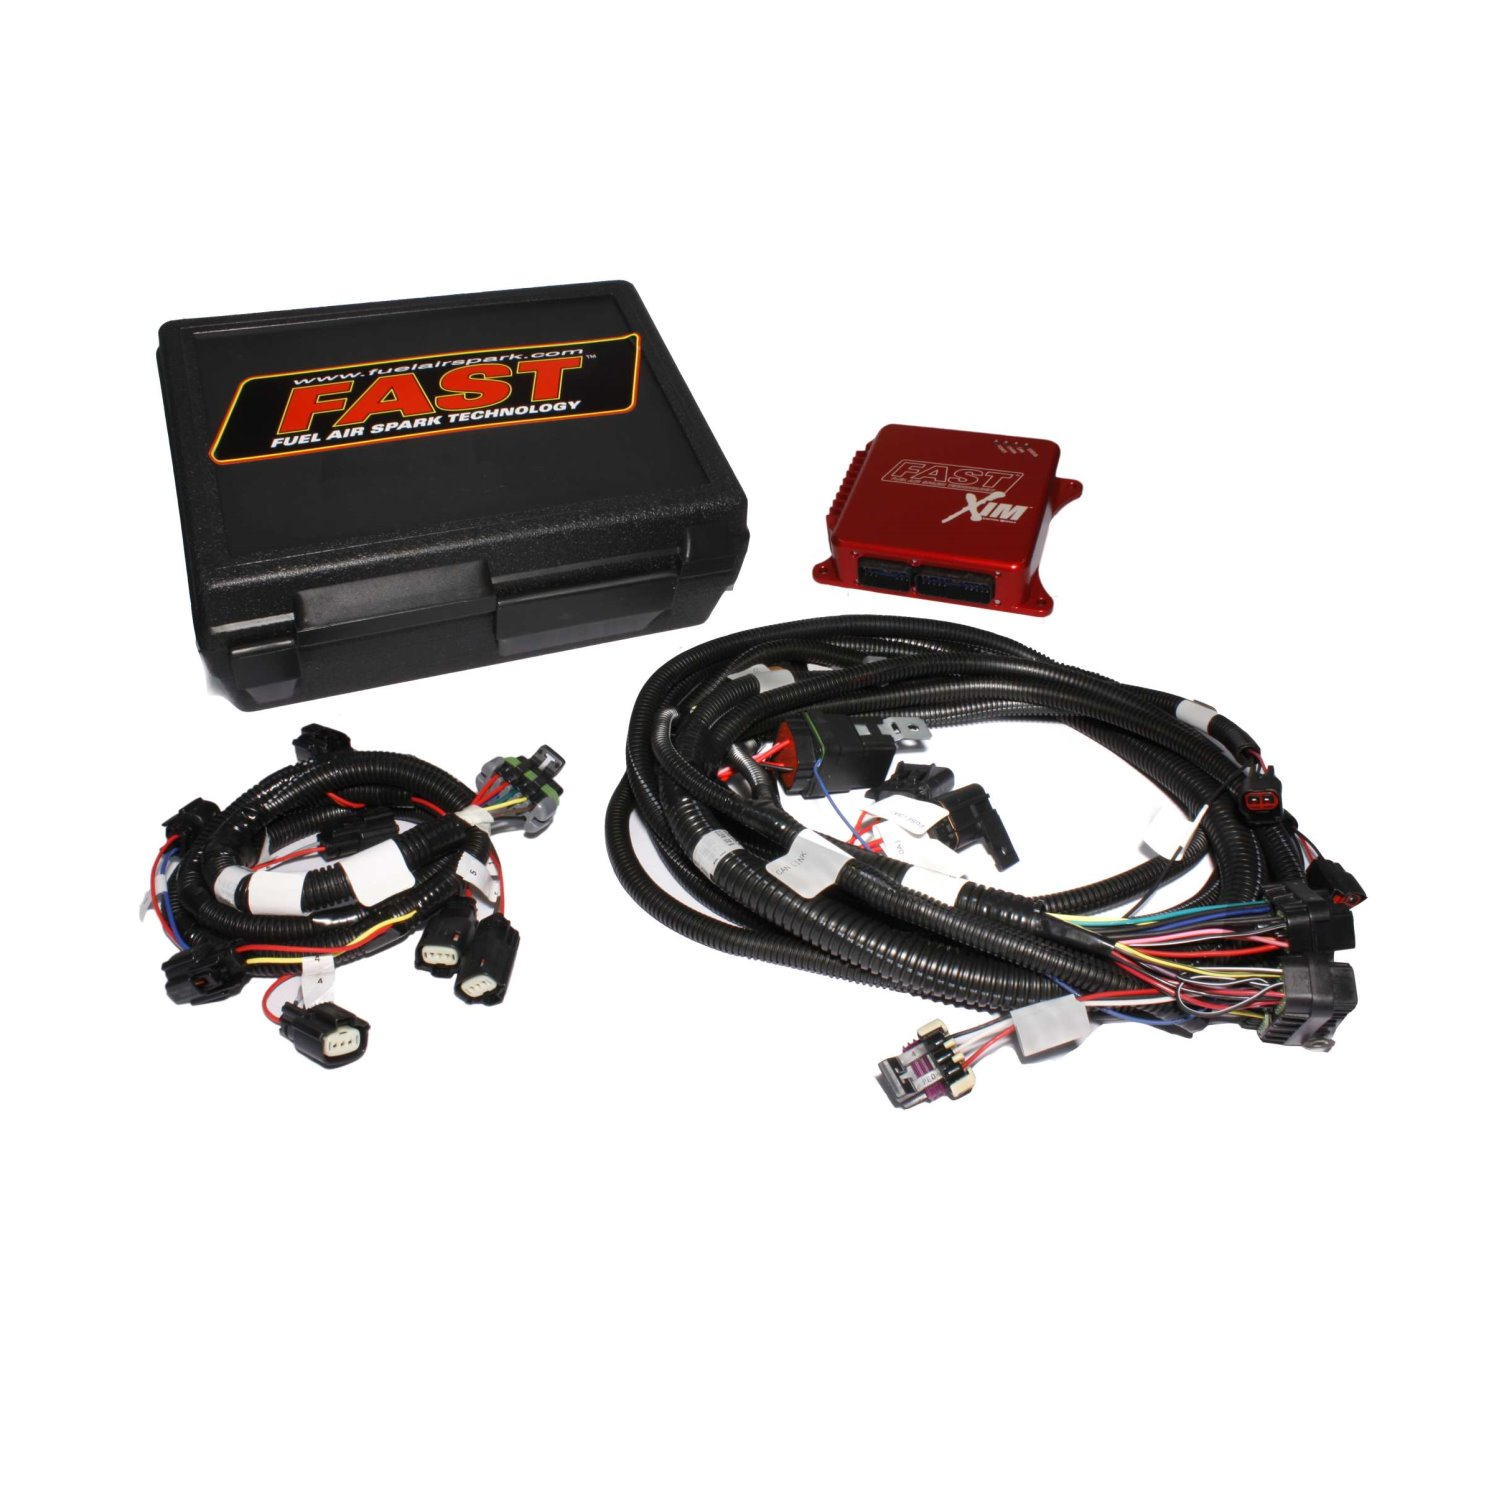 FAST XIM Ford Coyote Kit